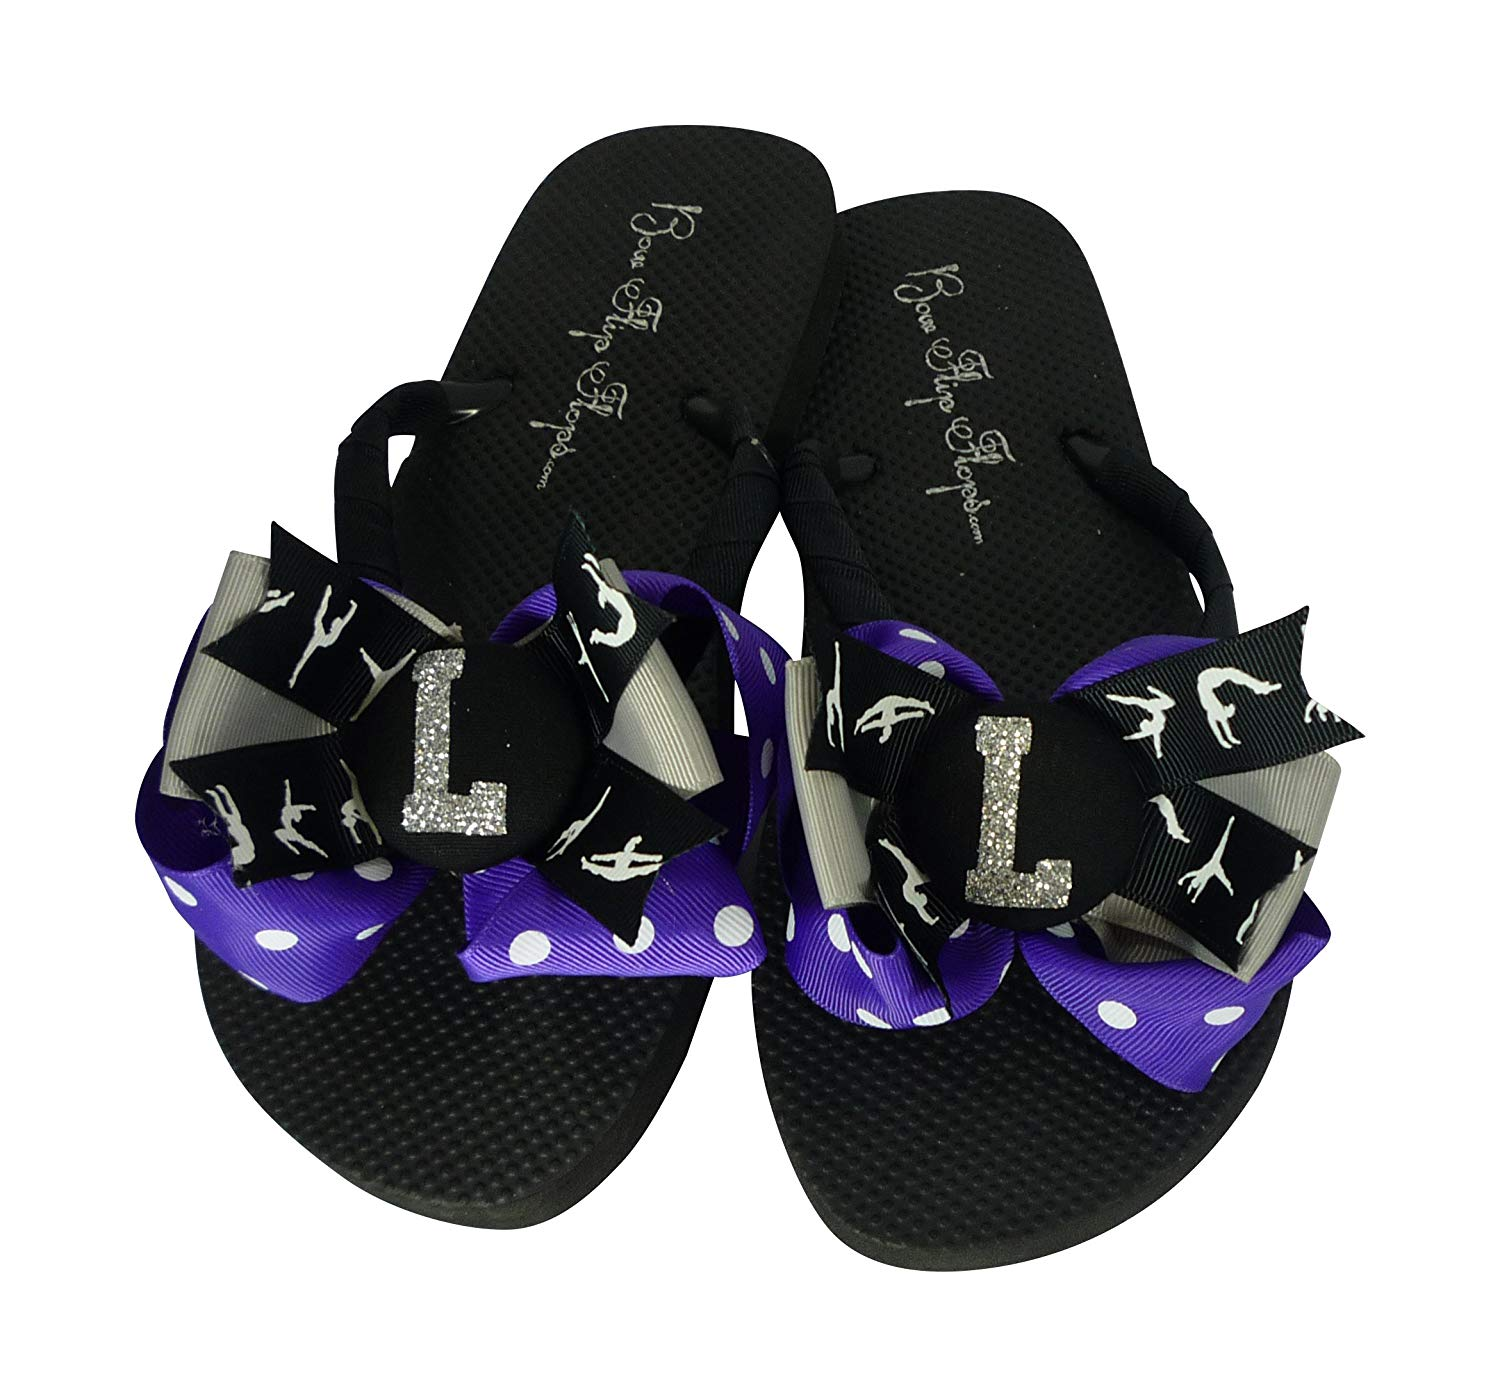 c117aa401616c3 Get Quotations · Purple Silver Personalized Gymnastics Glitter Bow Flip  Flops for Women